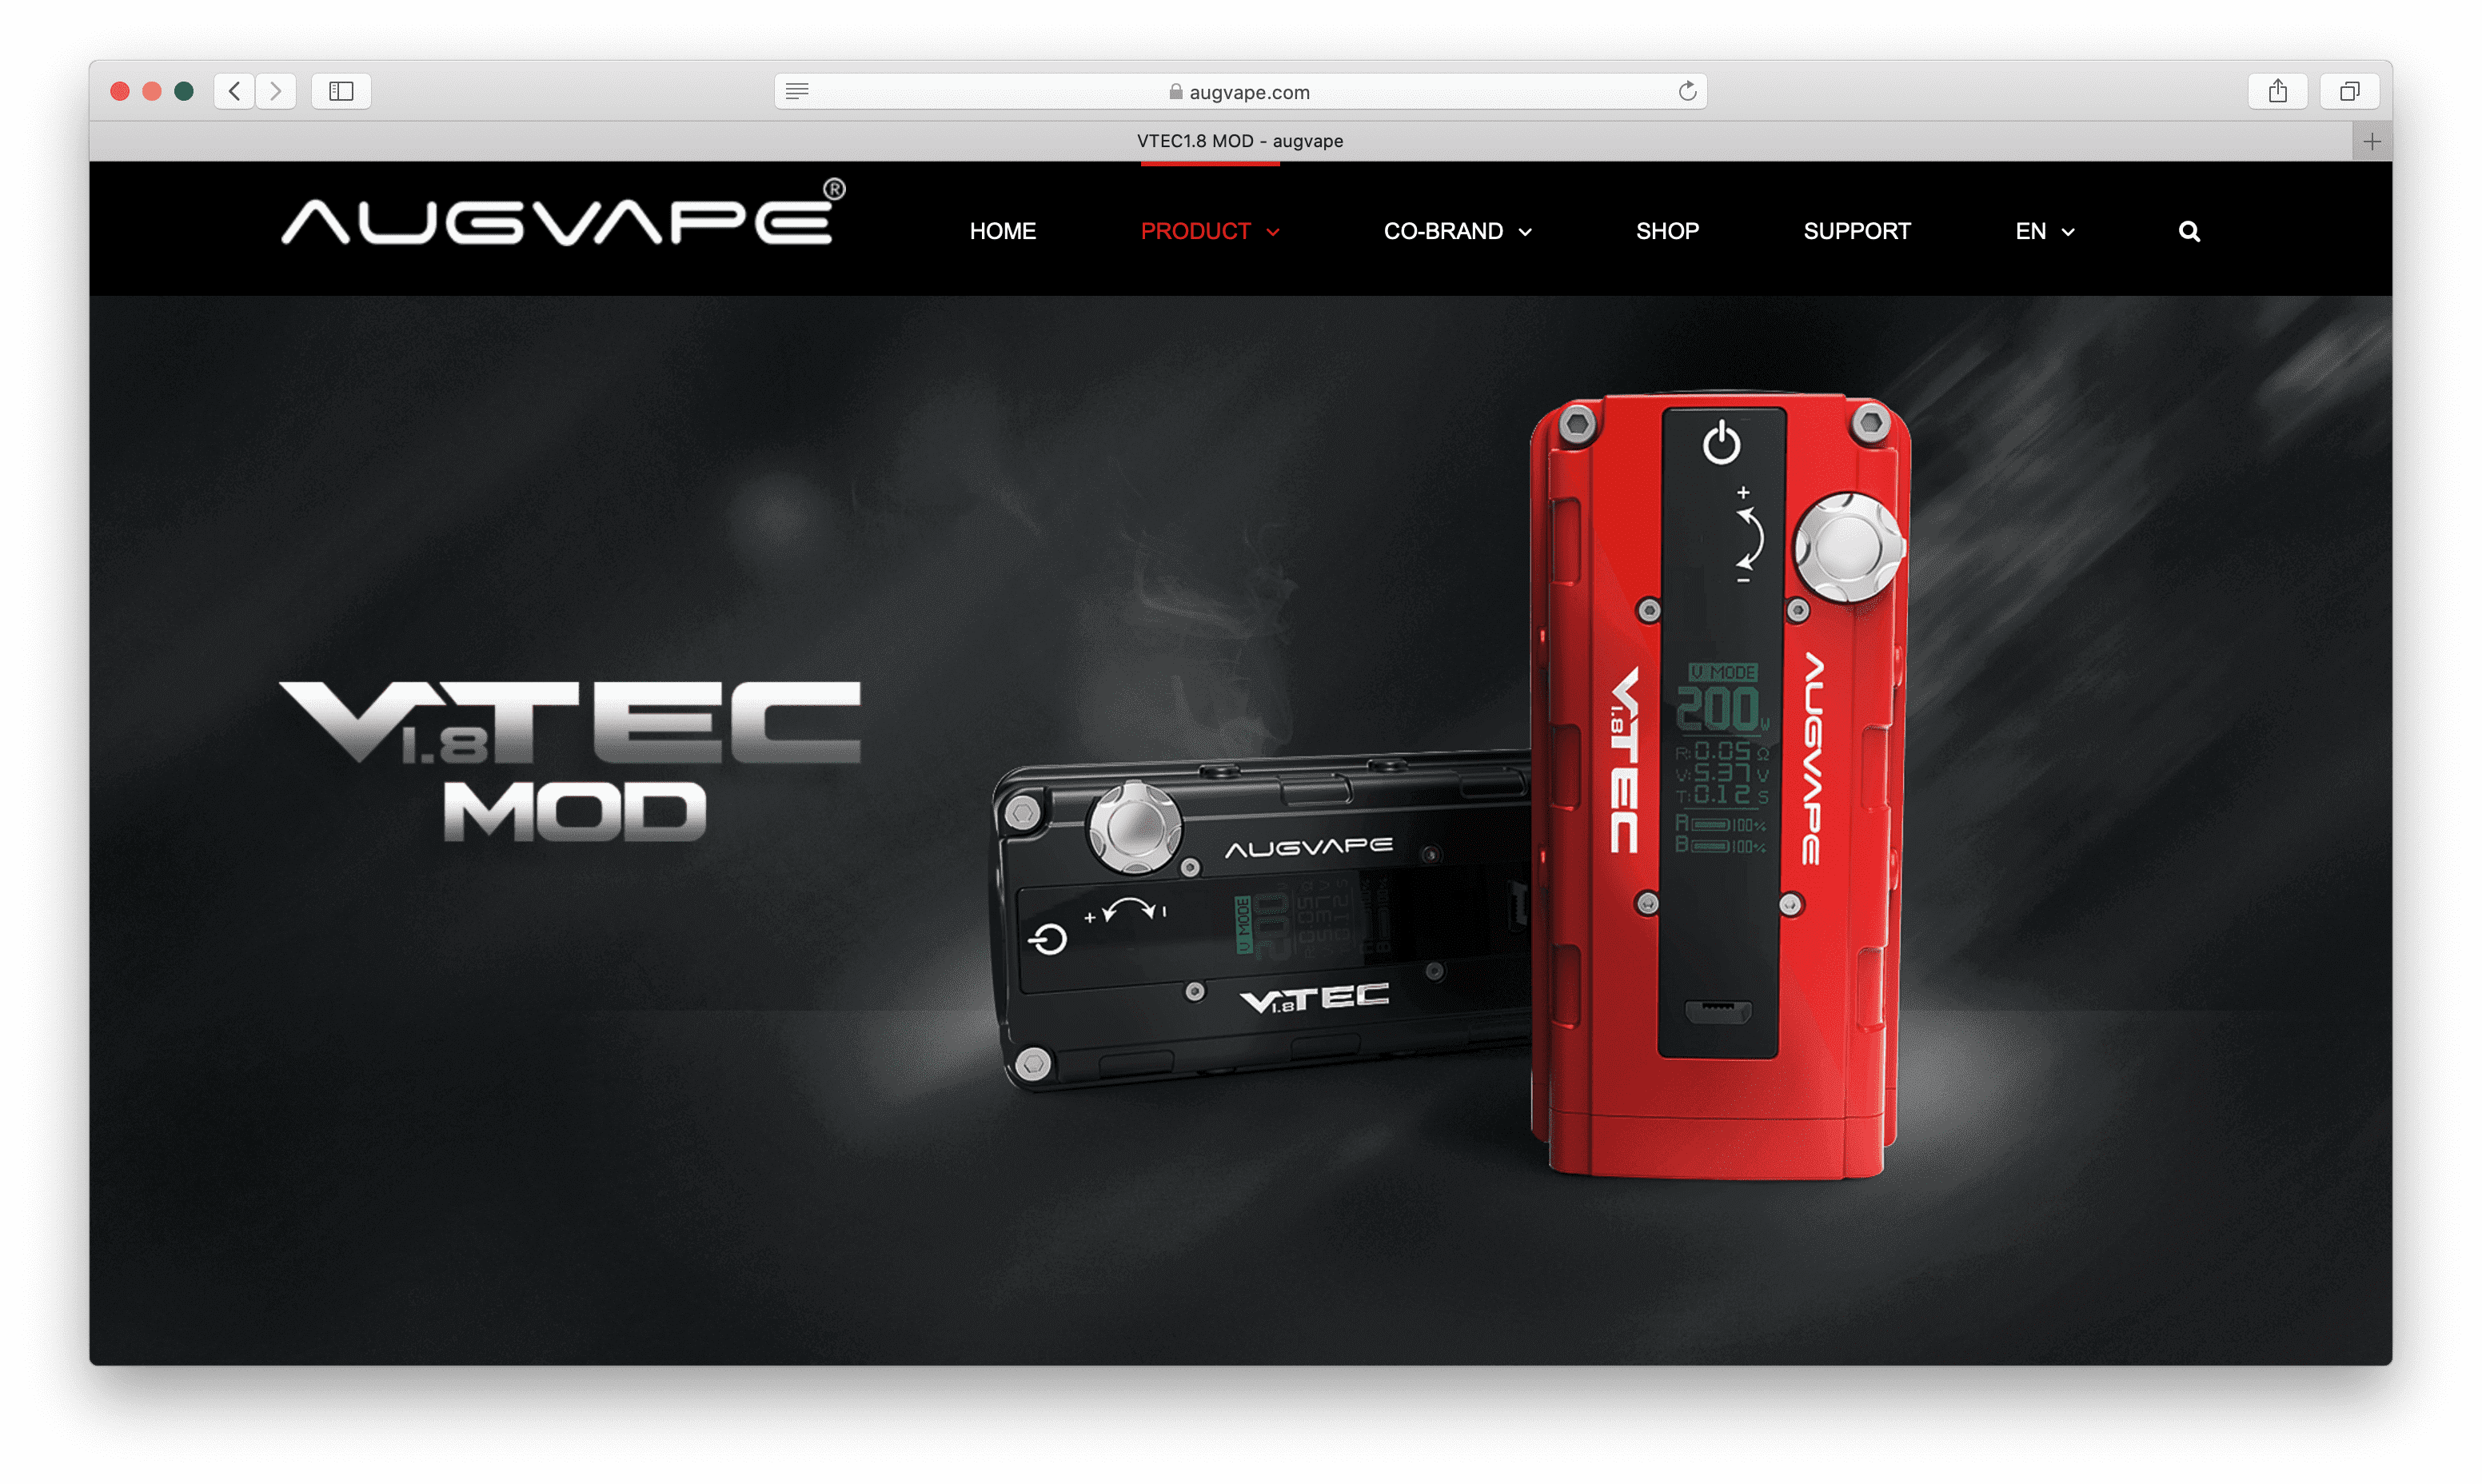 Augvape: High-Performance Mods and Customizable Tanks